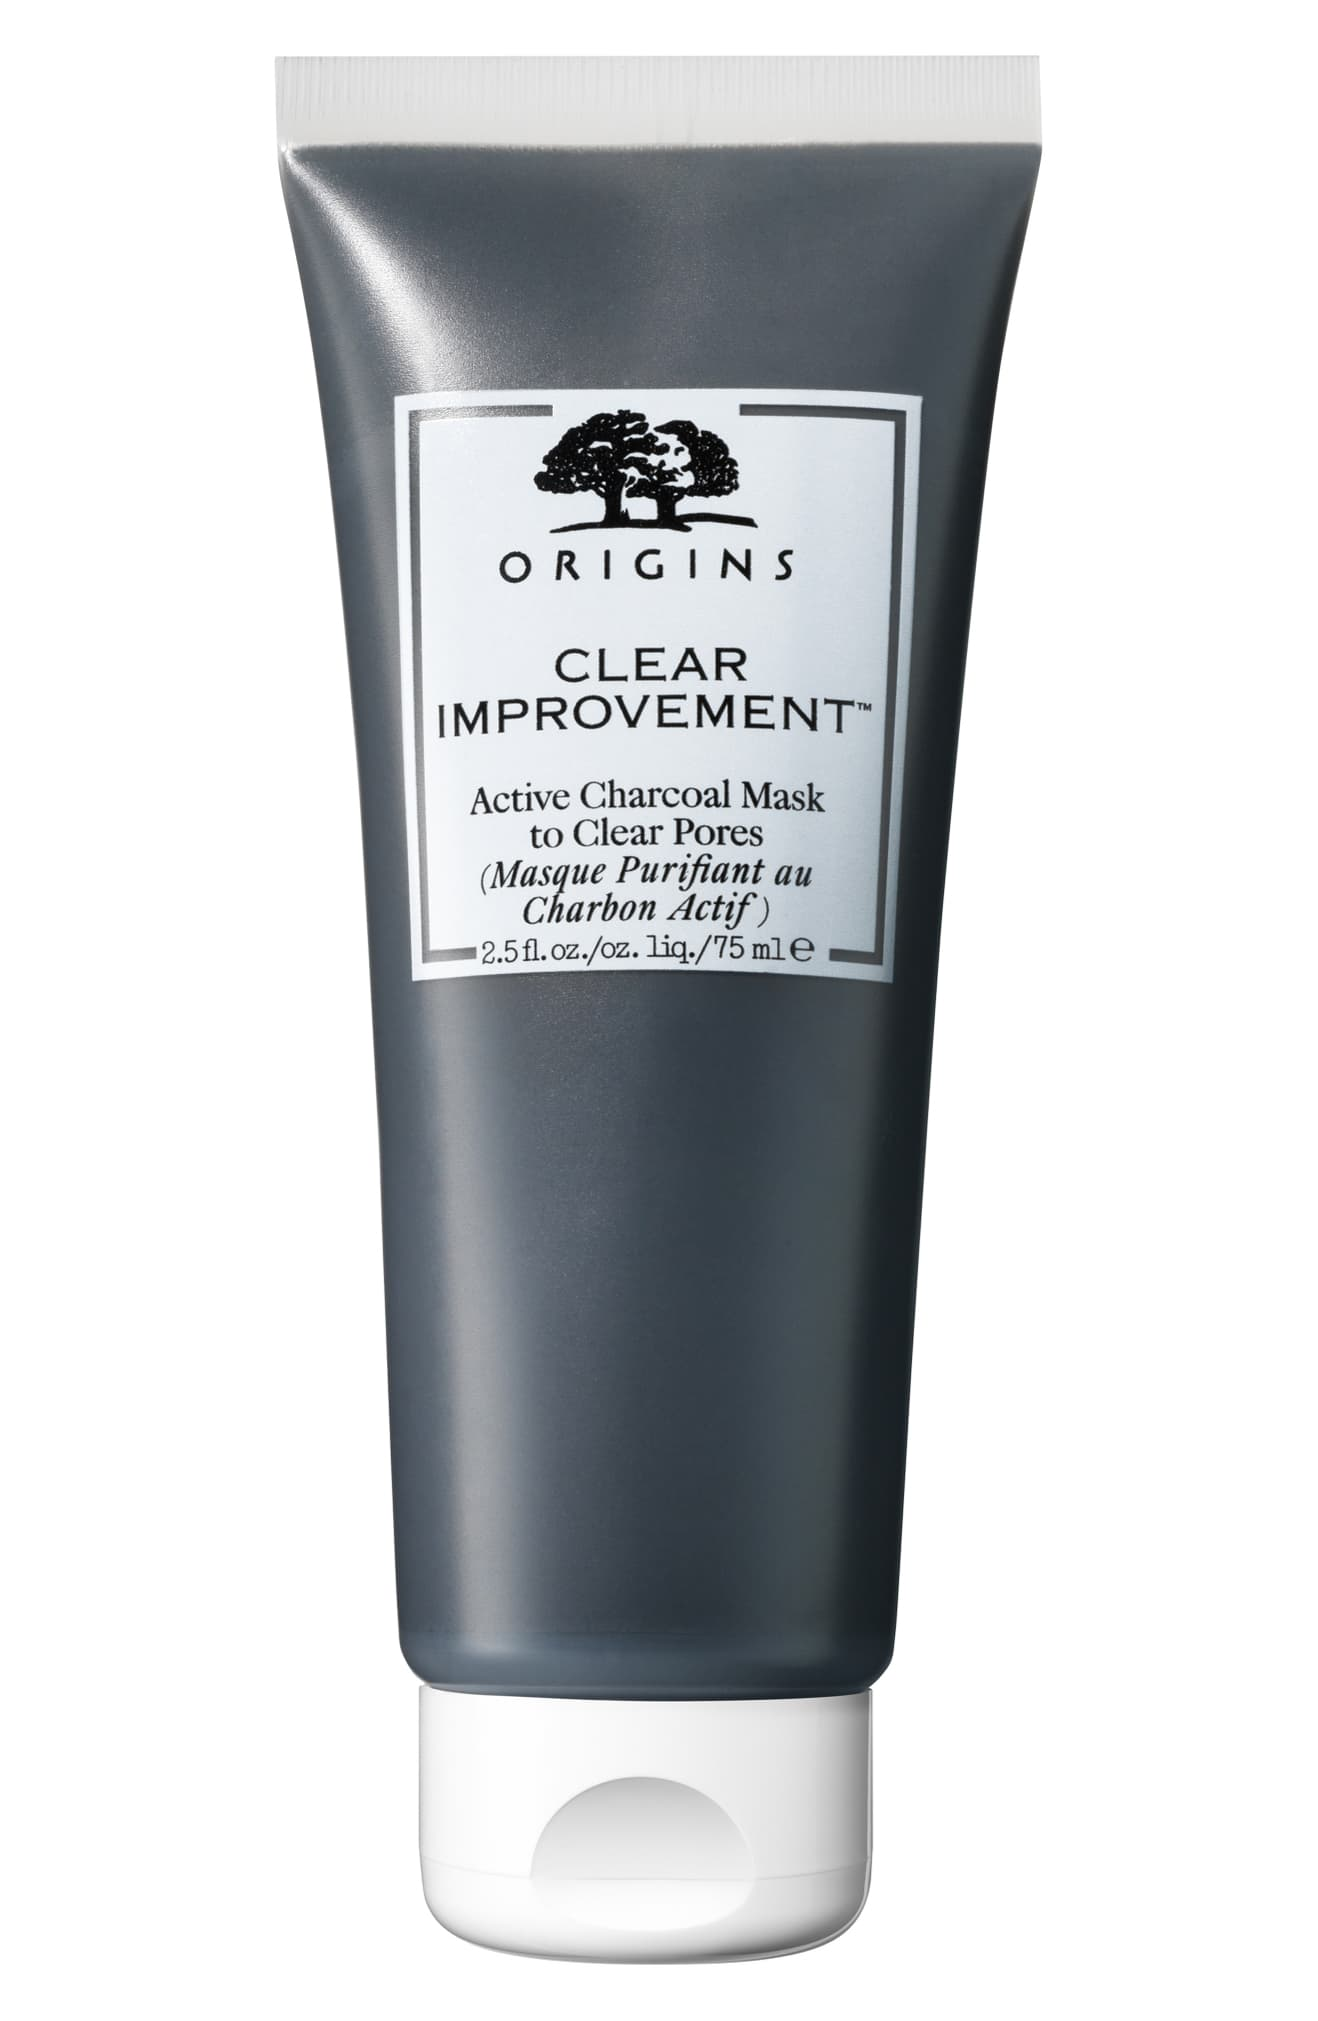 ORIGINS-Clear Improvement™ Active Charcoal Mask to Clear Pores